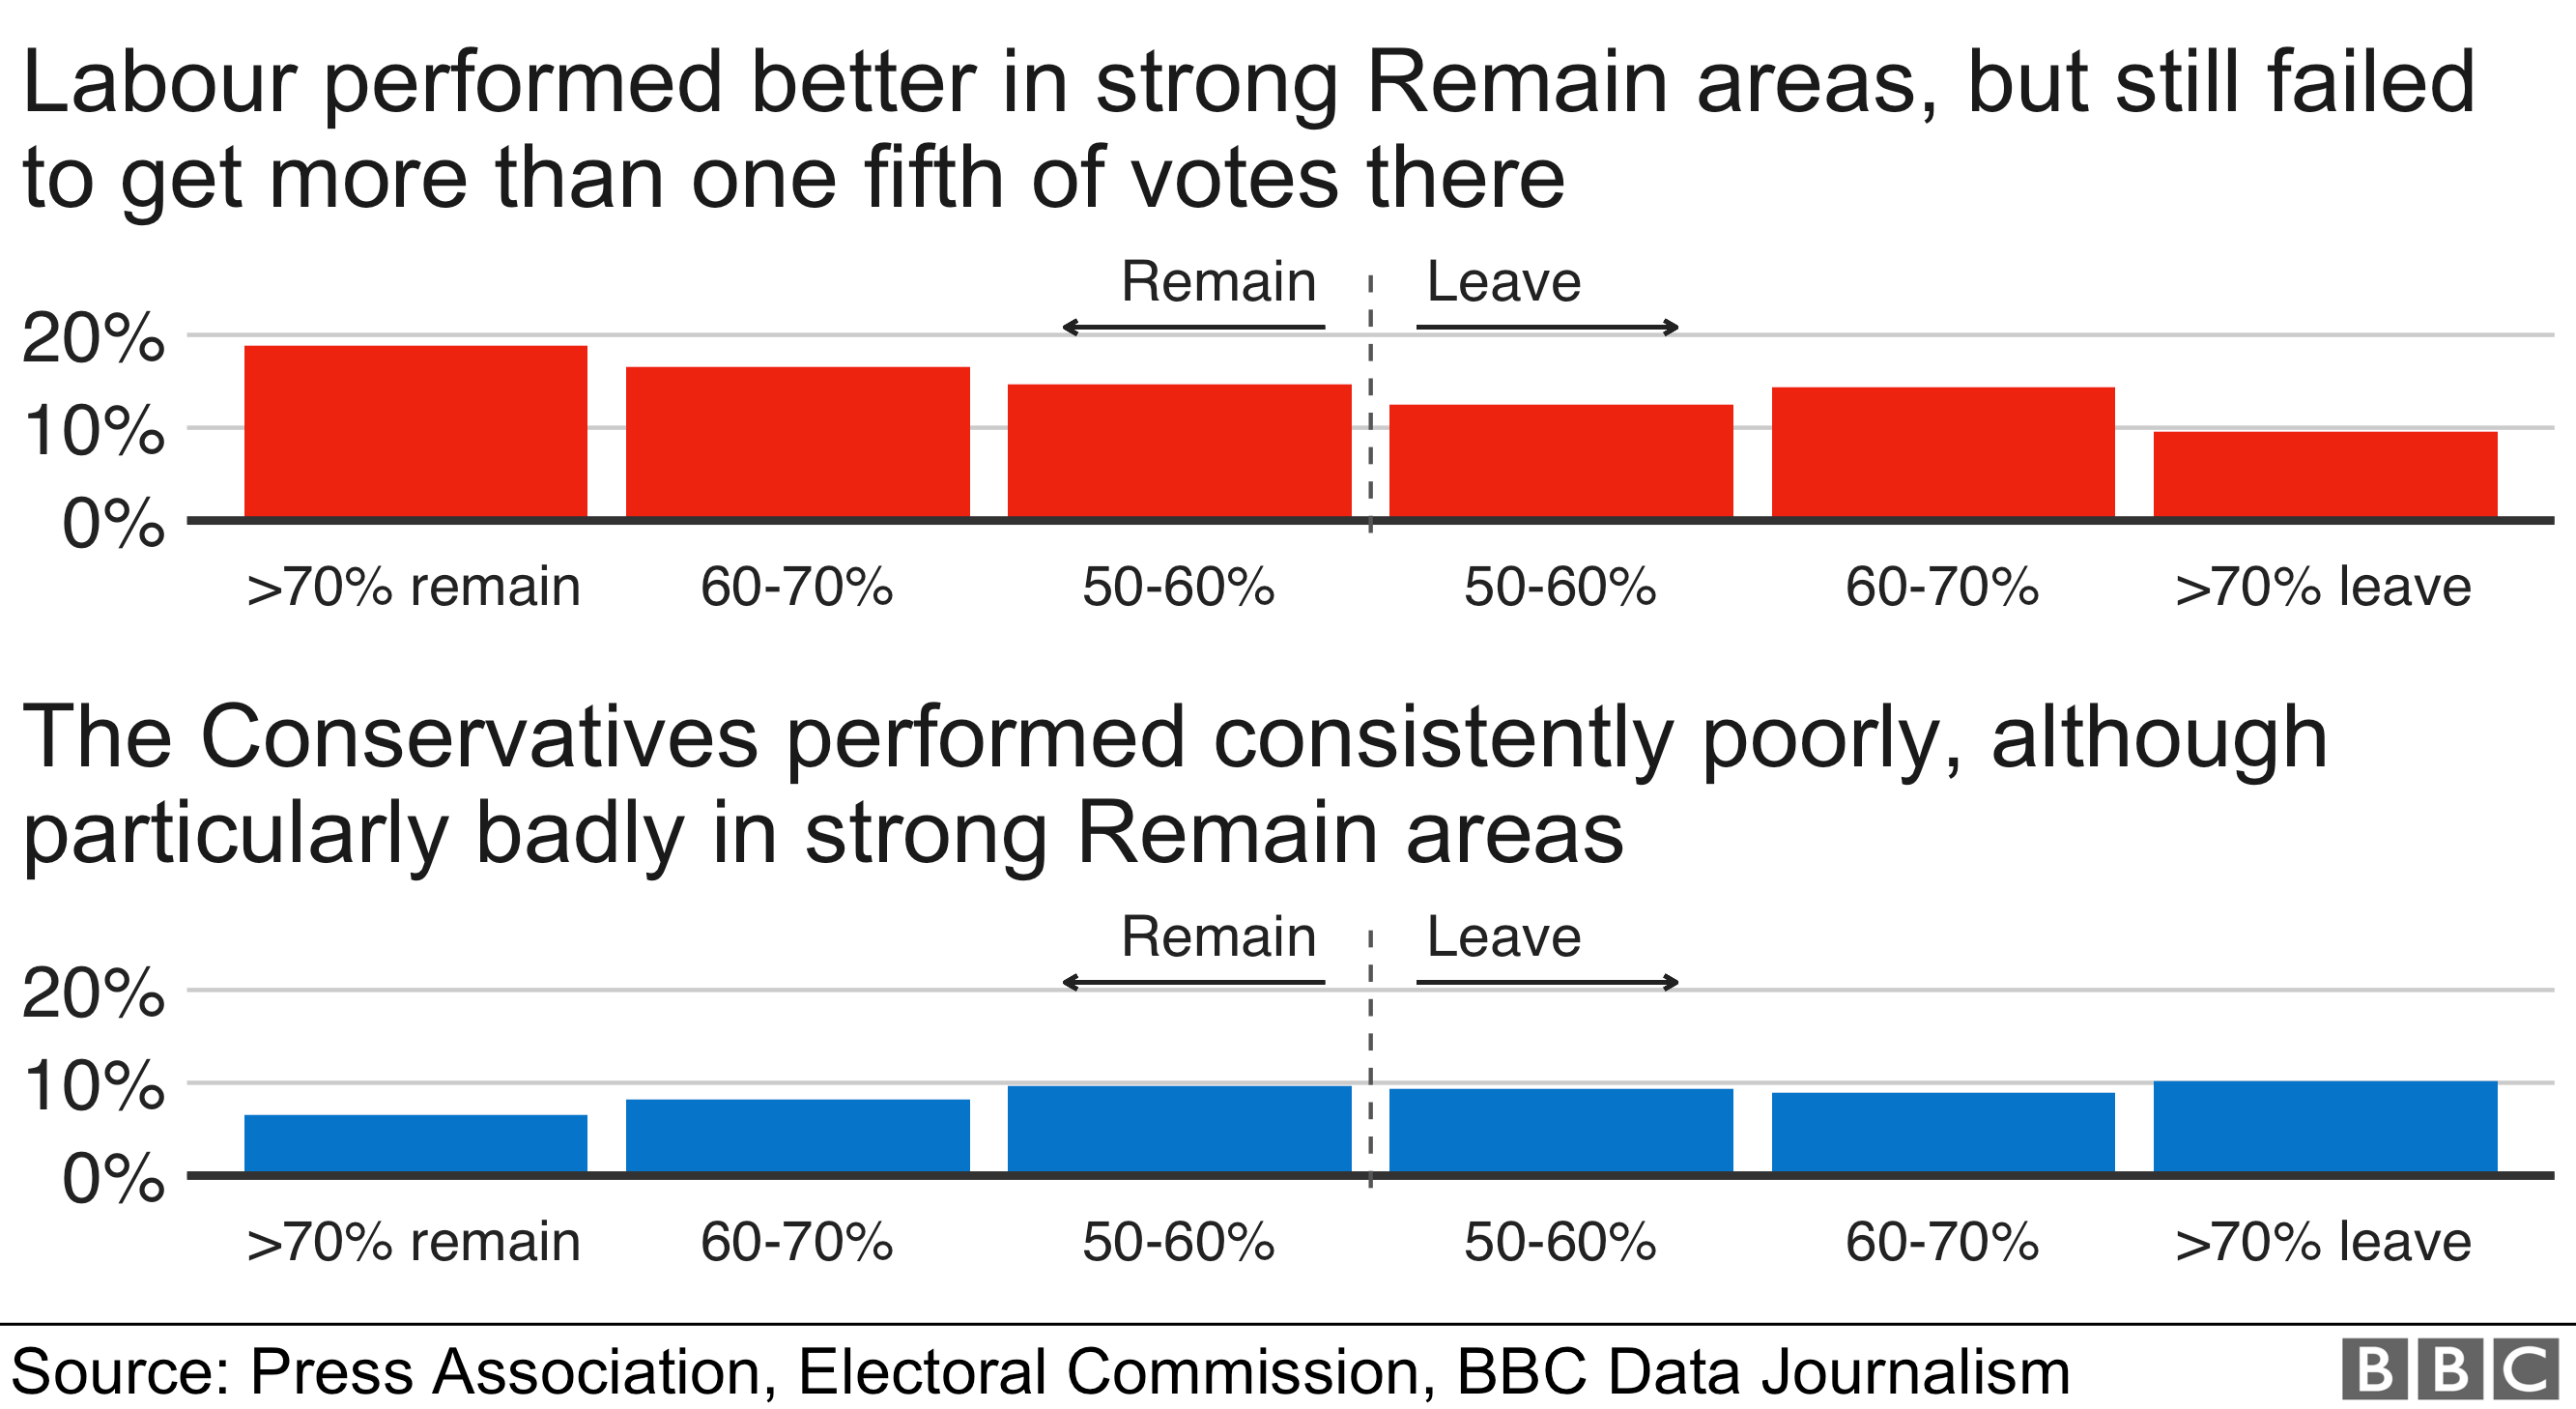 Labour did marginally better in remain areas and the Conservatives performed best in leave areas